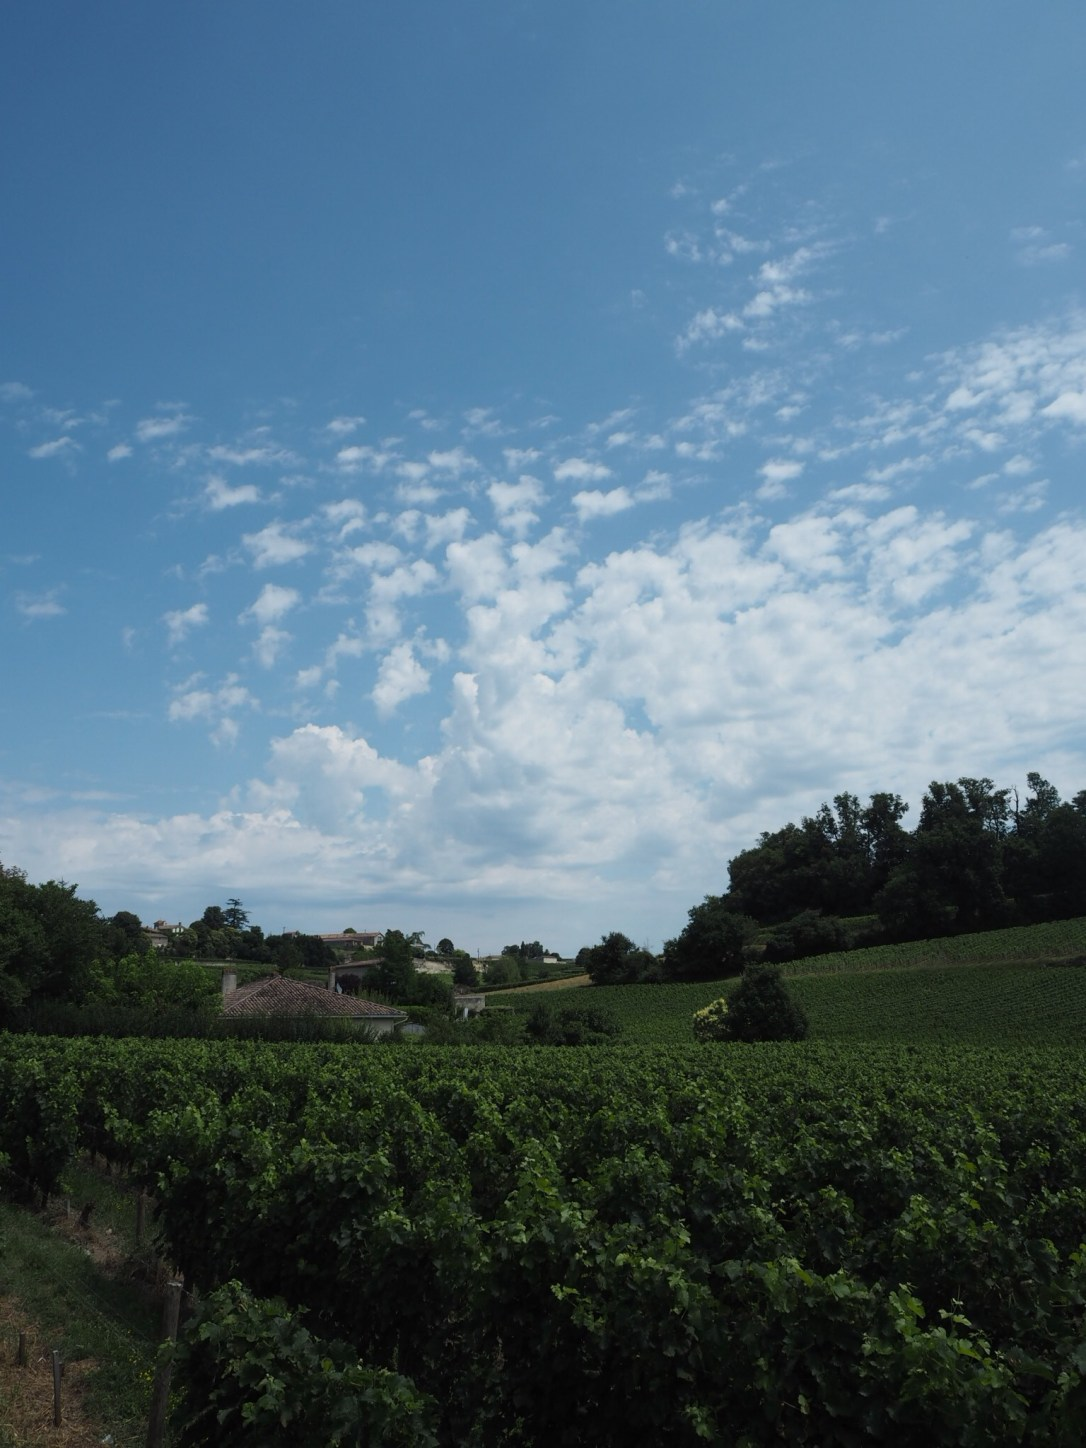 Passing vineyards on the walk from Saint-Émilion train station to the village